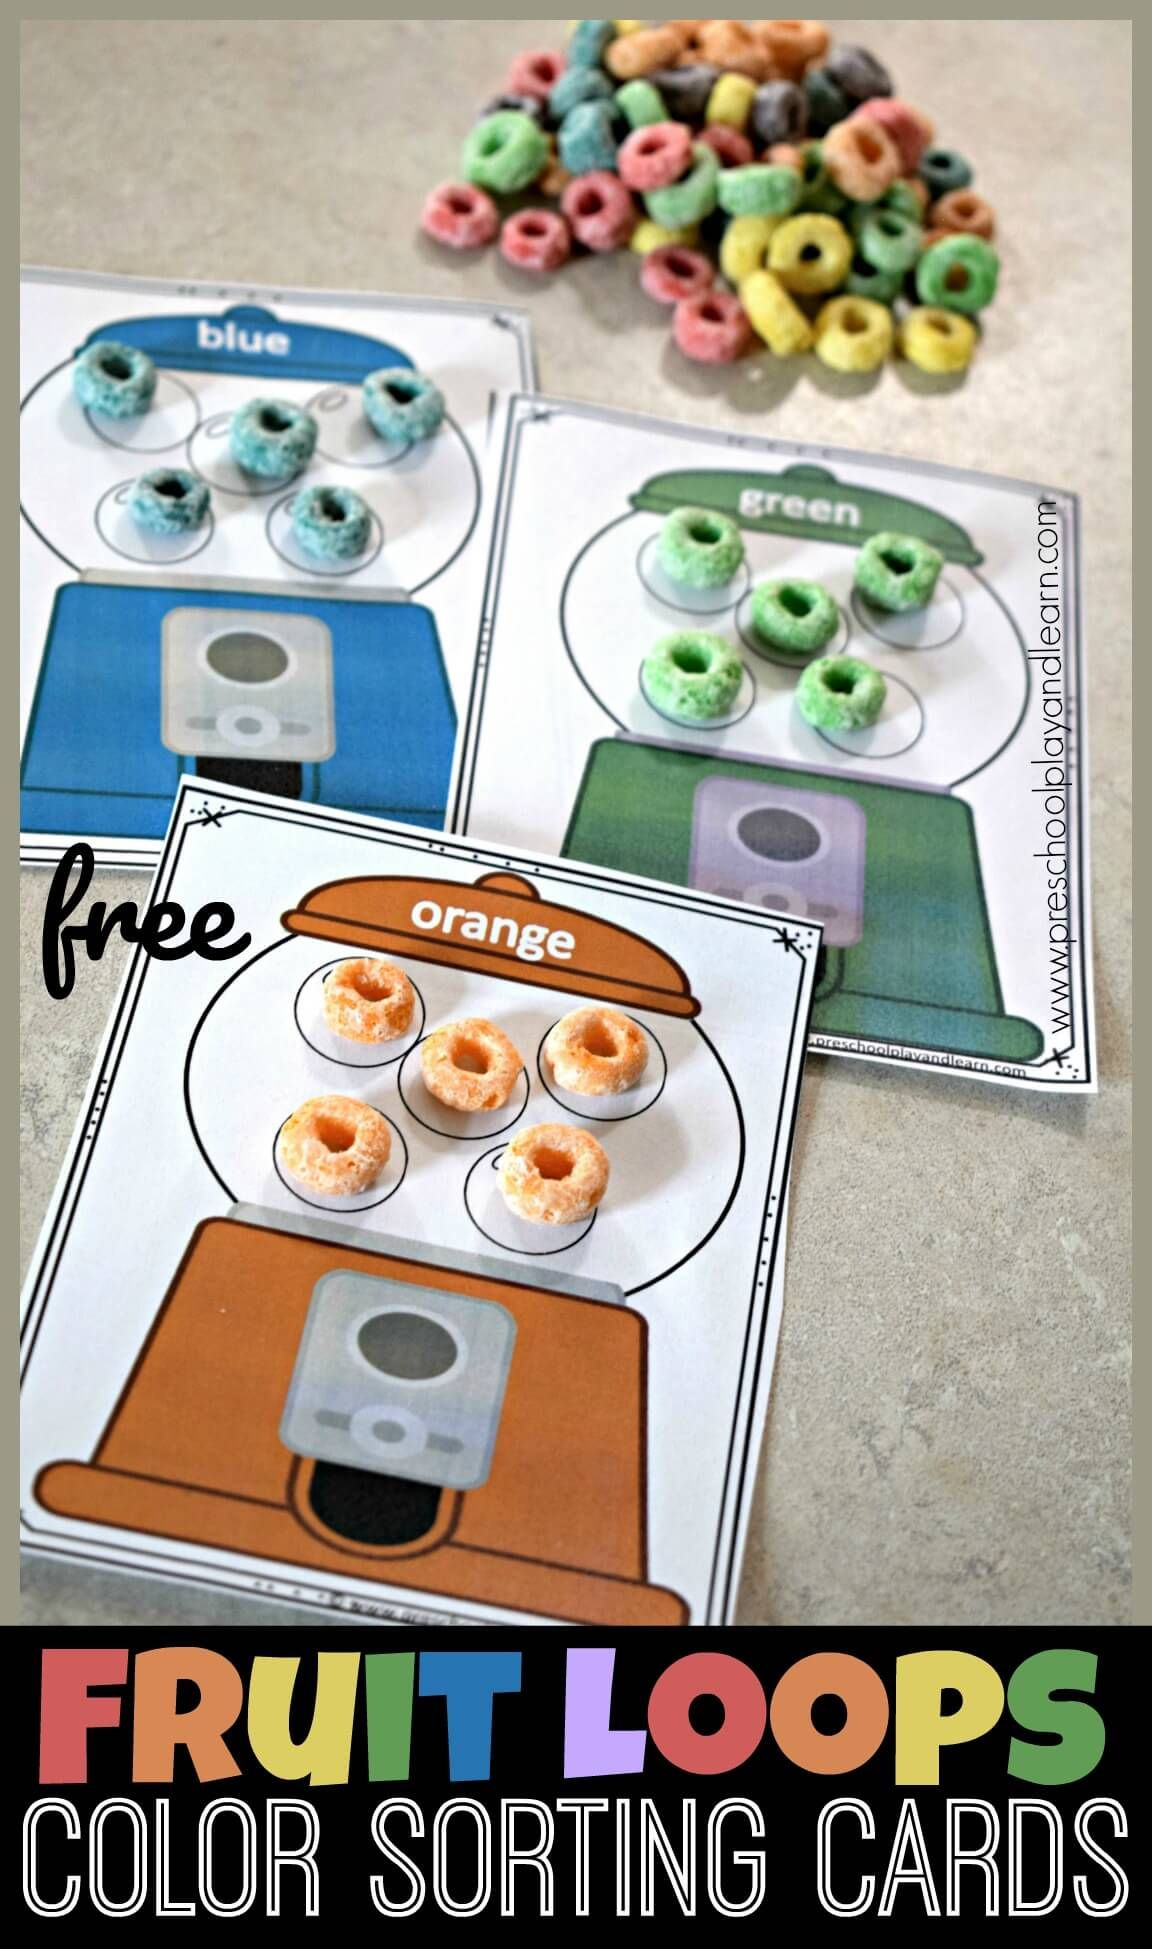 Free Fruit Loops Color Sorting Cards